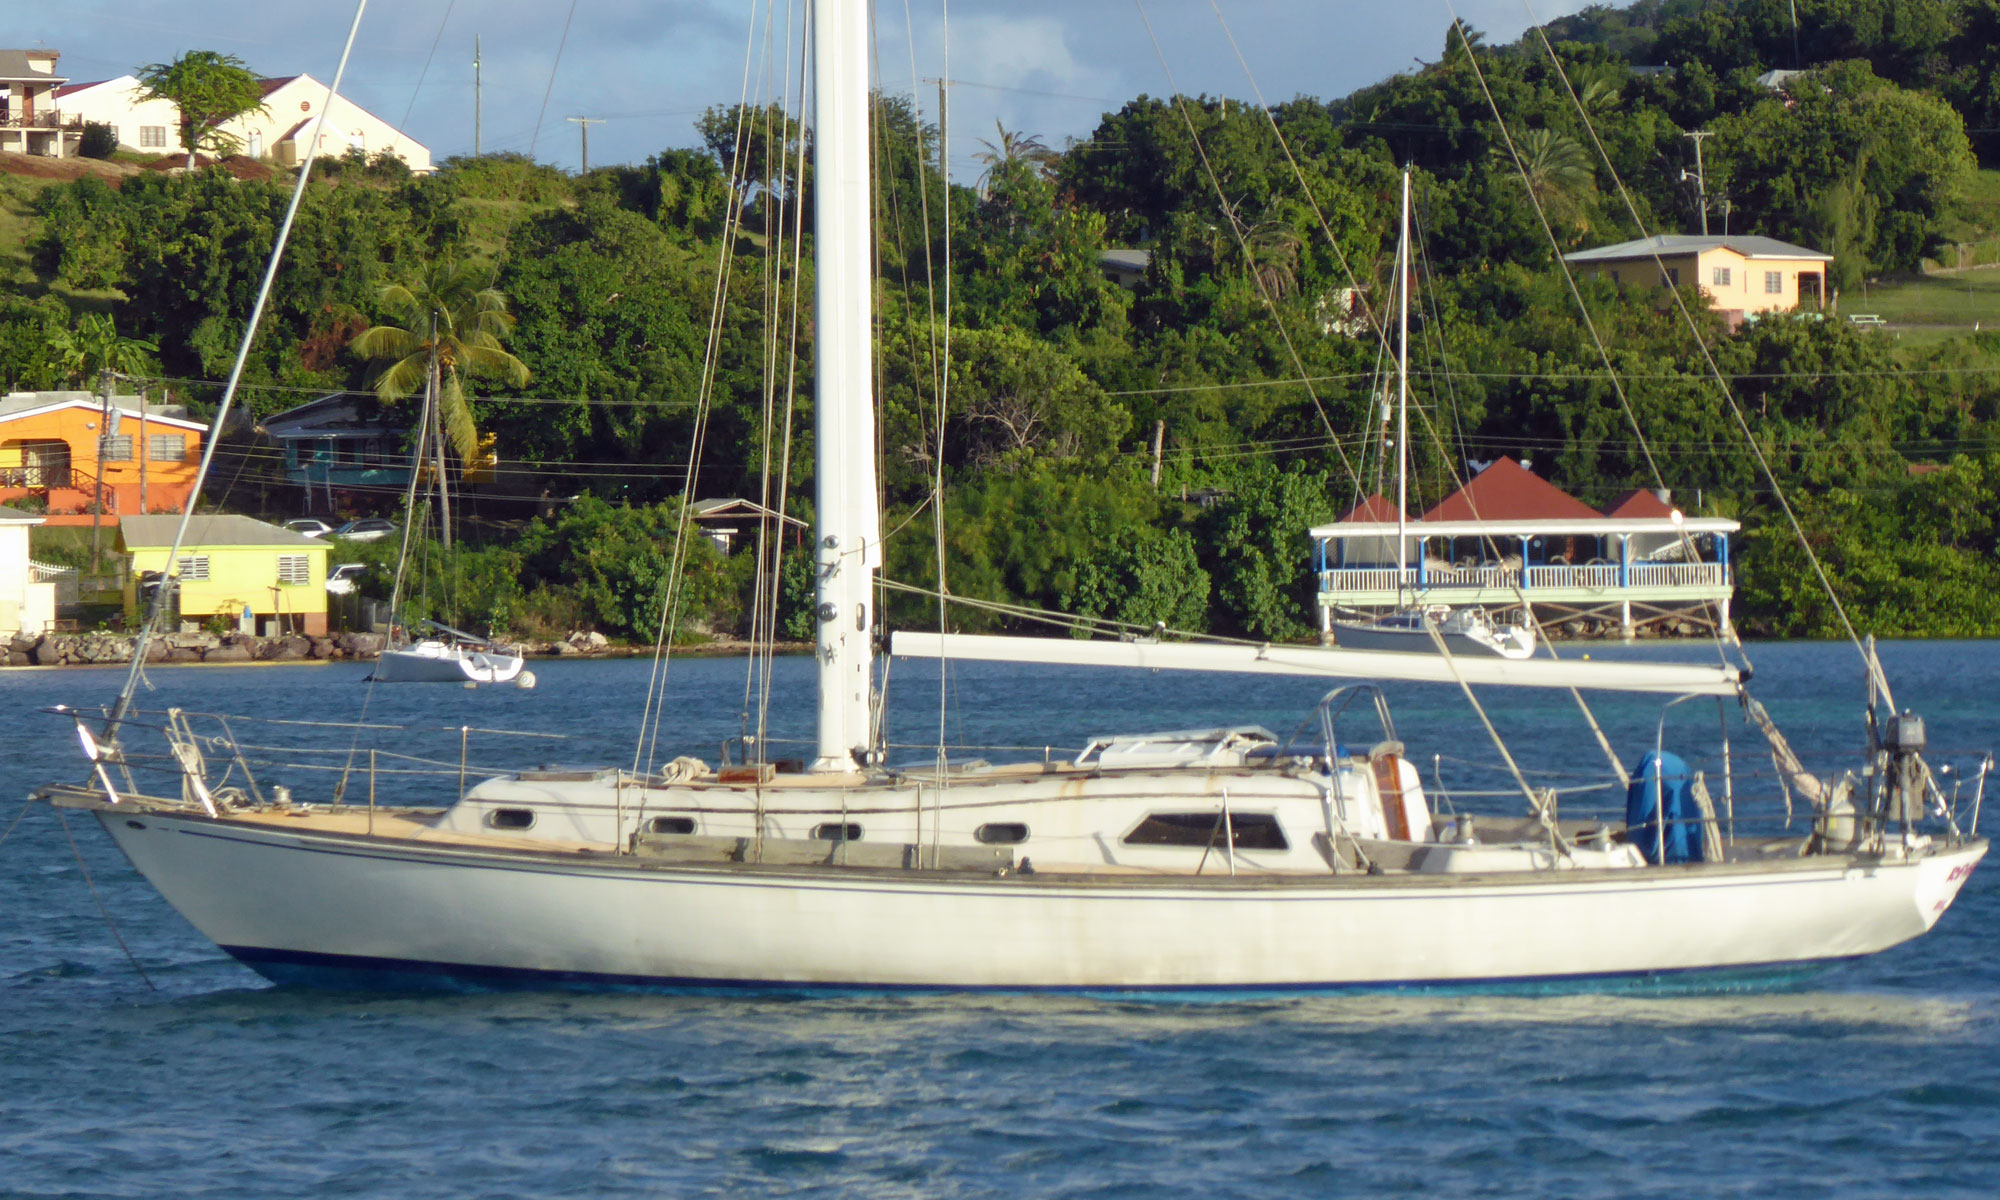 An Islander 44 sailboat